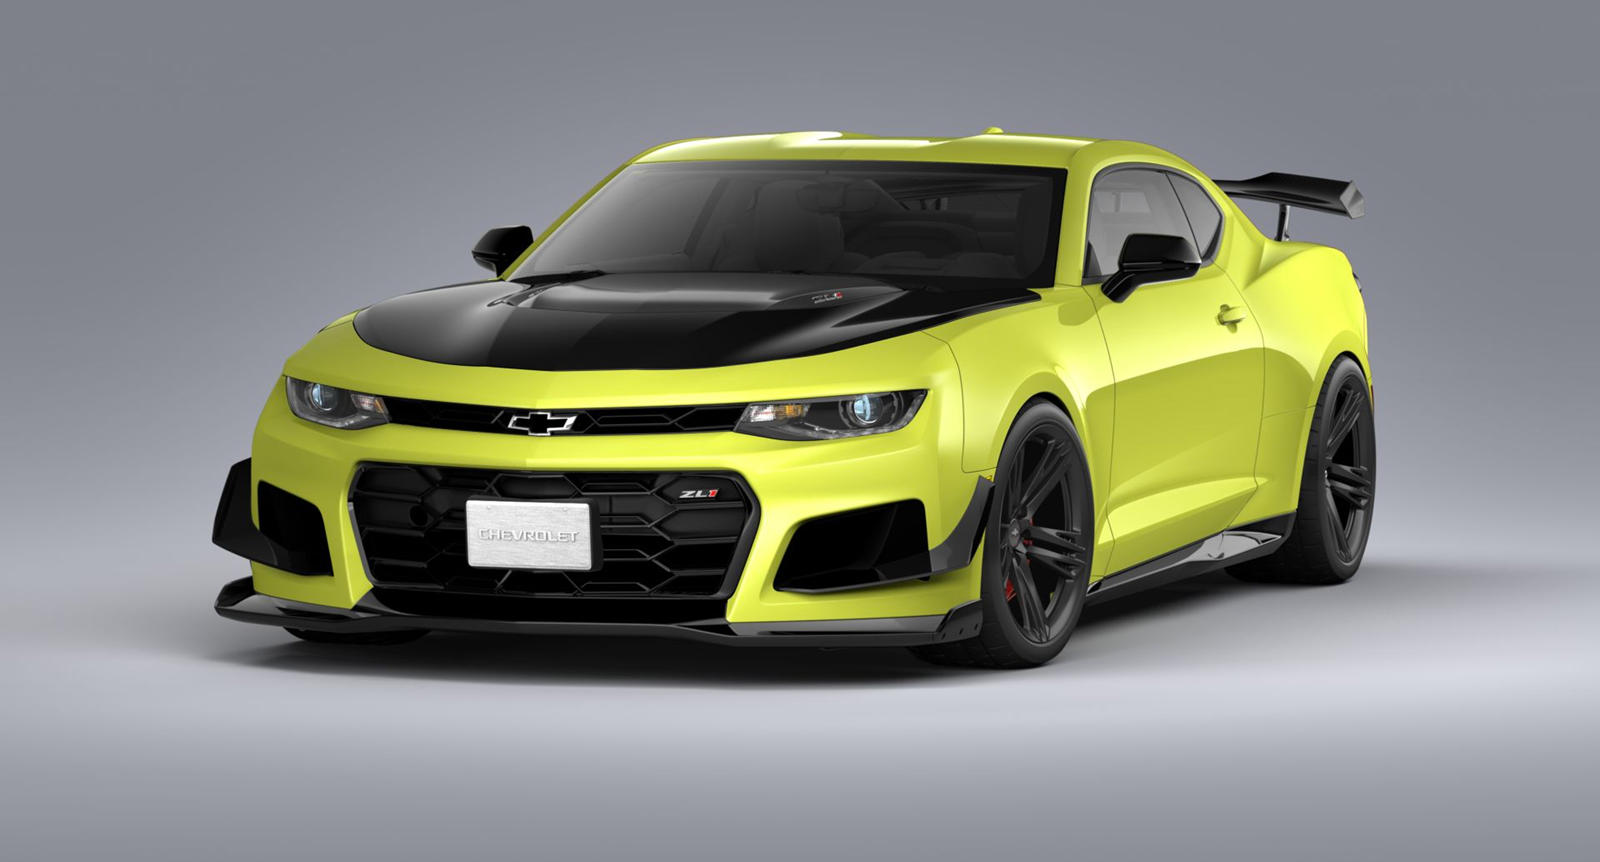 Fully Loaded 2020 Chevy Camaro Costs How Much? | CarBuzz